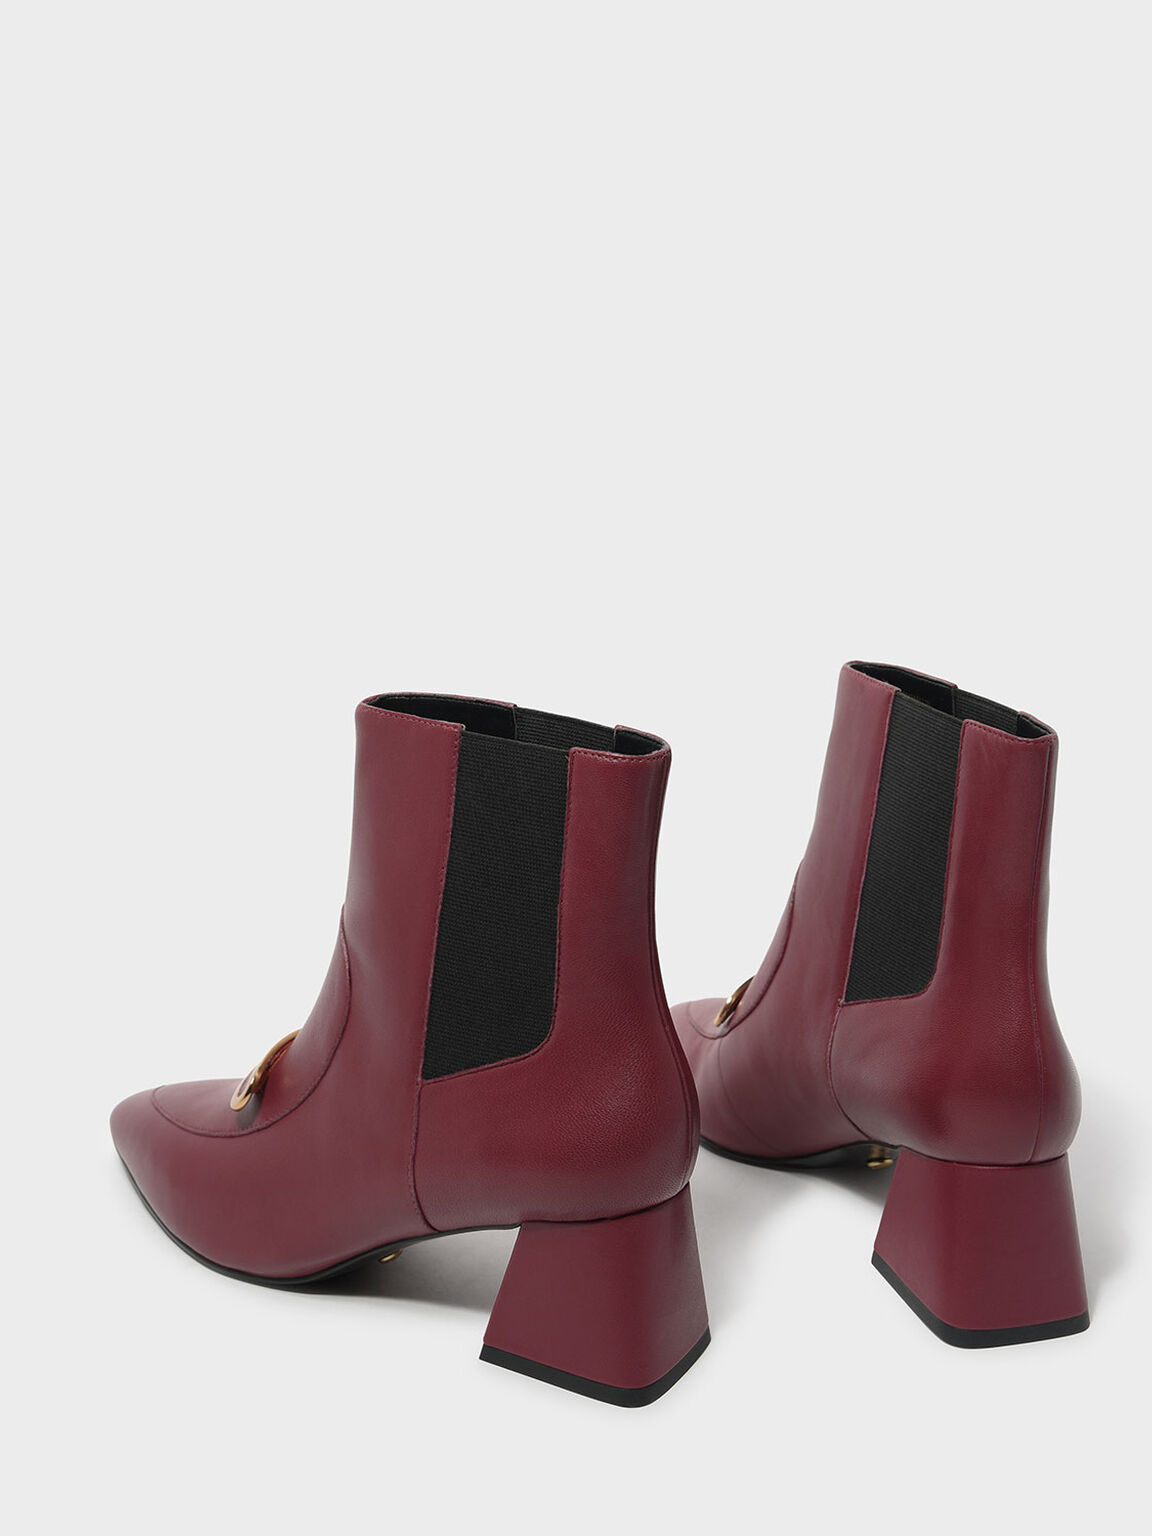 Metal Accent Leather Boots, Red, hi-res